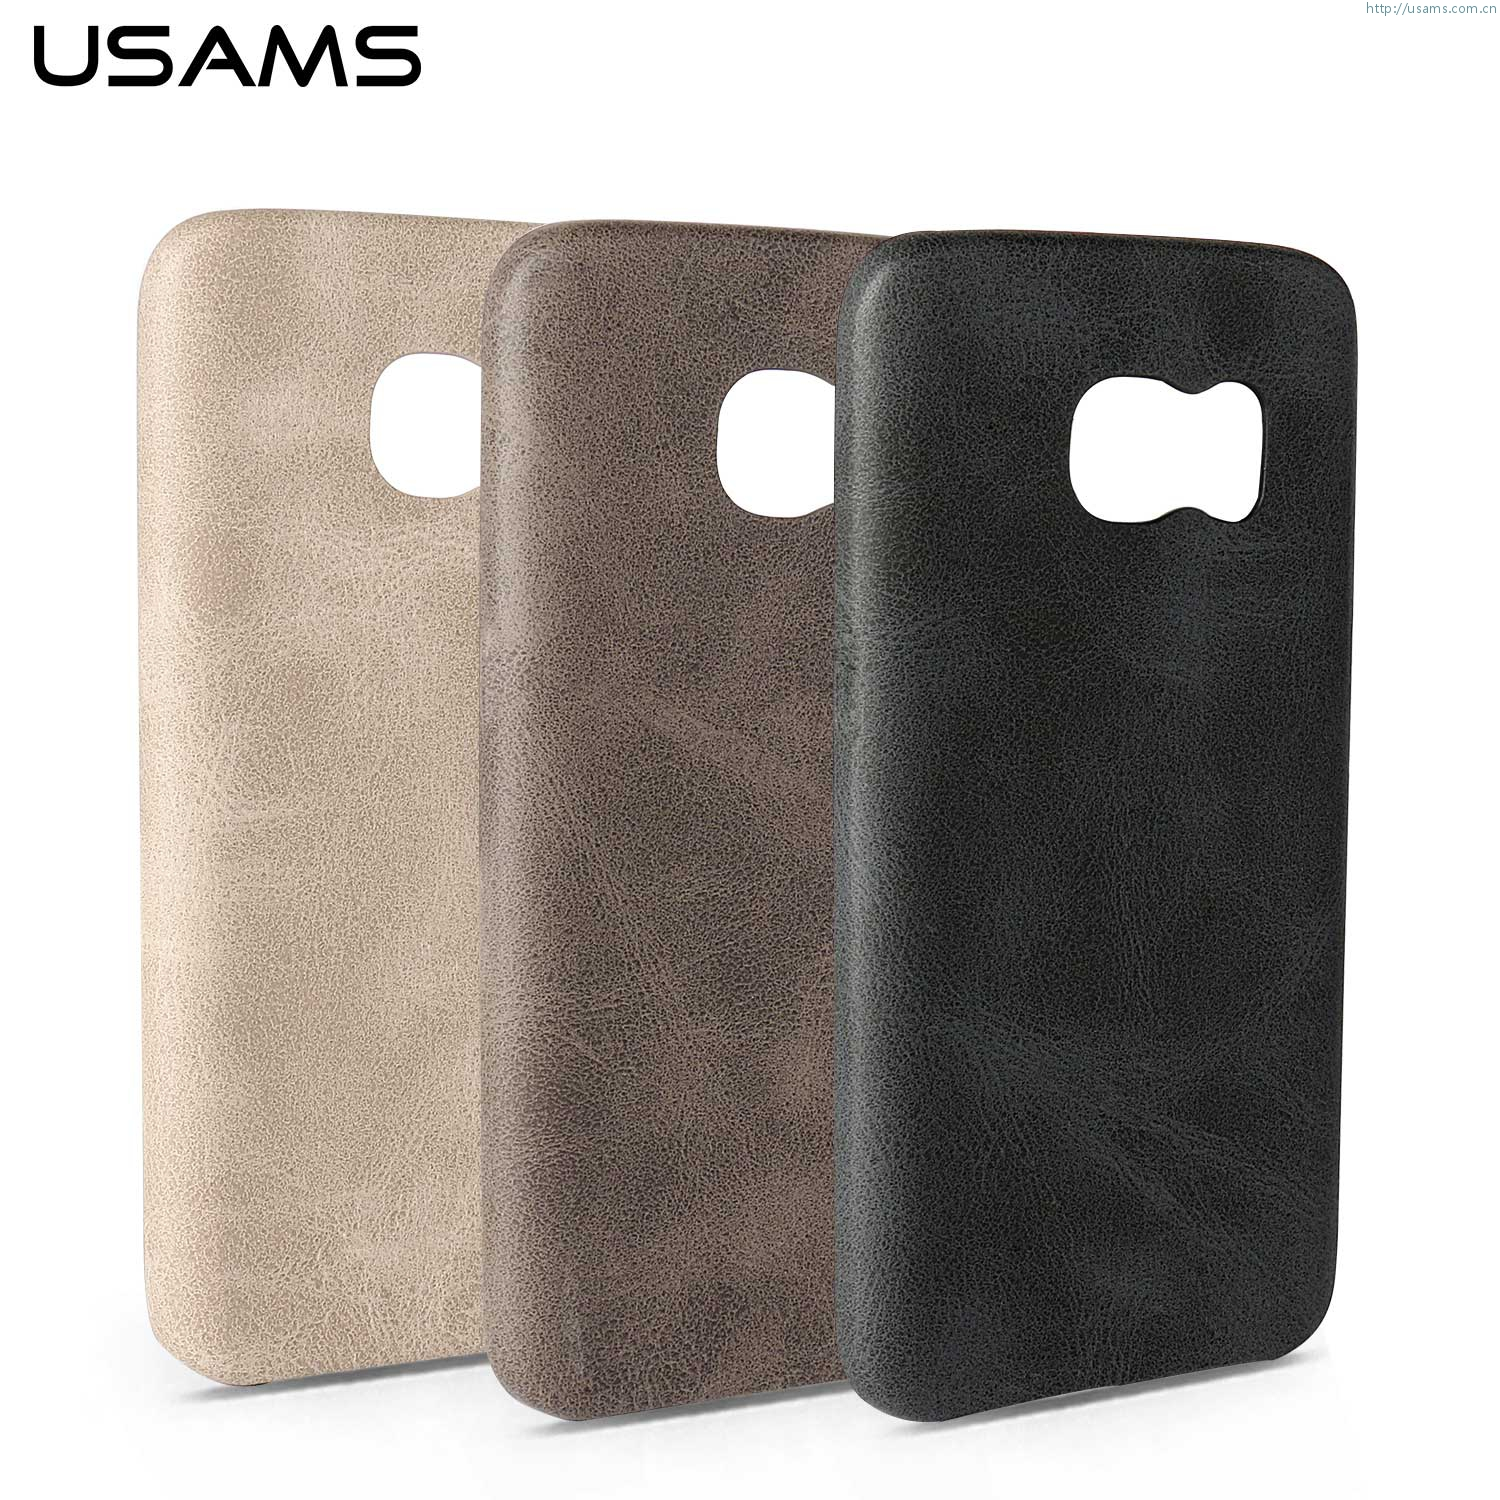 buy popular fcef8 4fc57 Samsung Galaxy S7 Bob Series Soft Case Back Cover Ultra Thin Soft PU  Leather Case Purchased